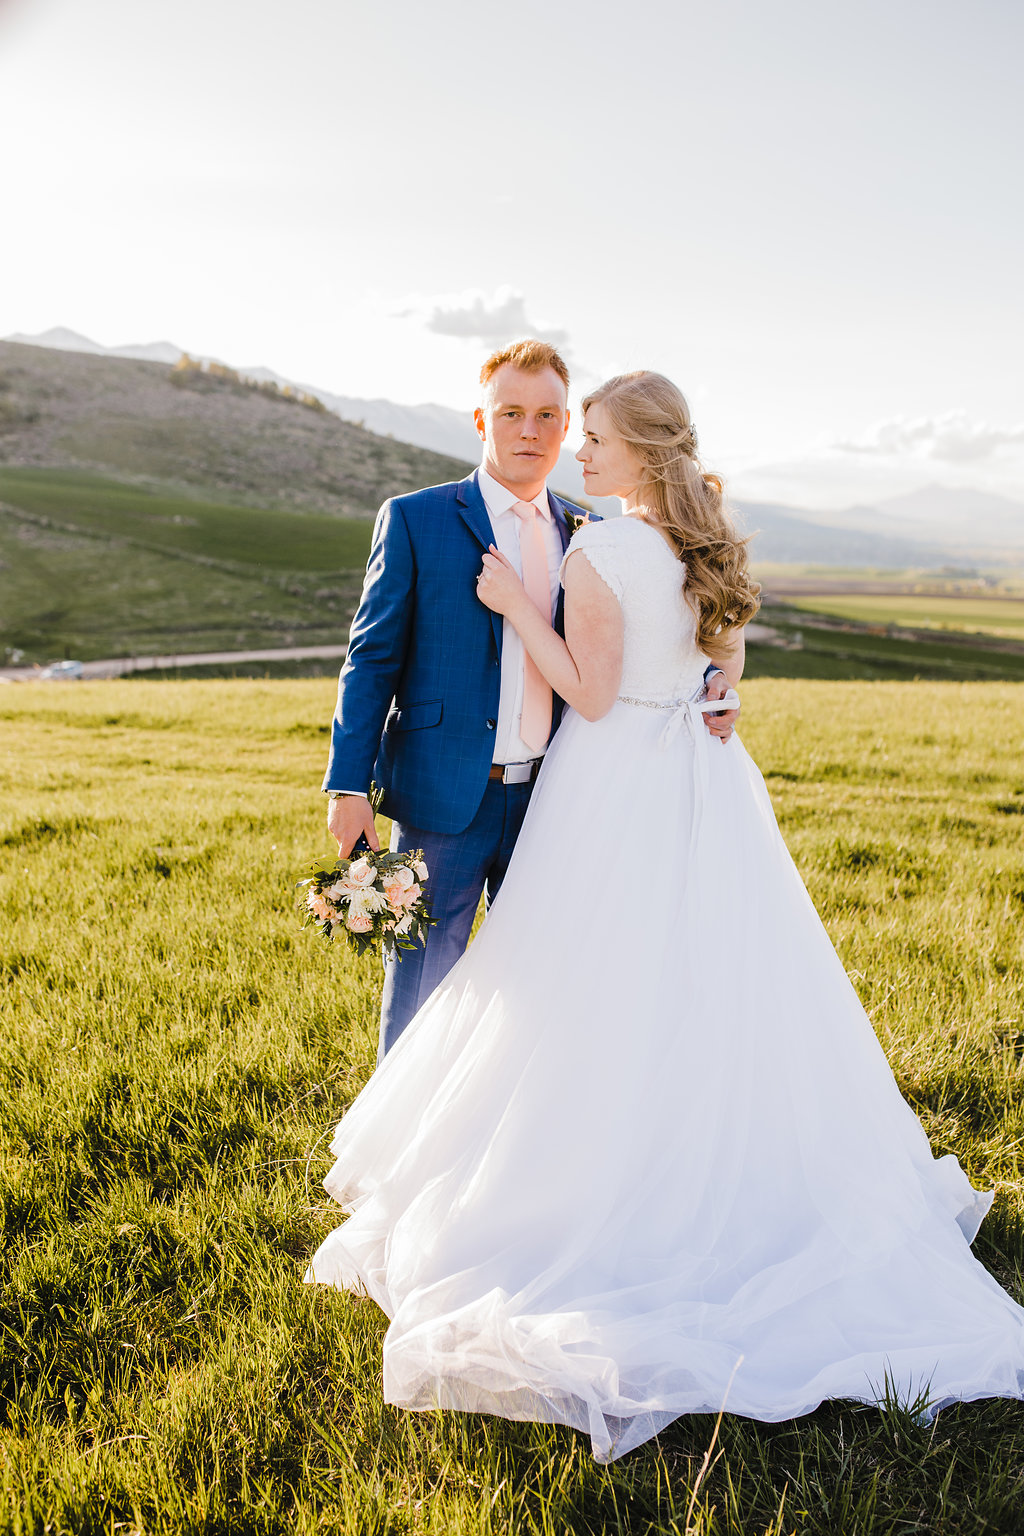 casual natural posing navy blue suit bride and groom in love romantic mountain adventurous couple wedding photography in cache valley utah